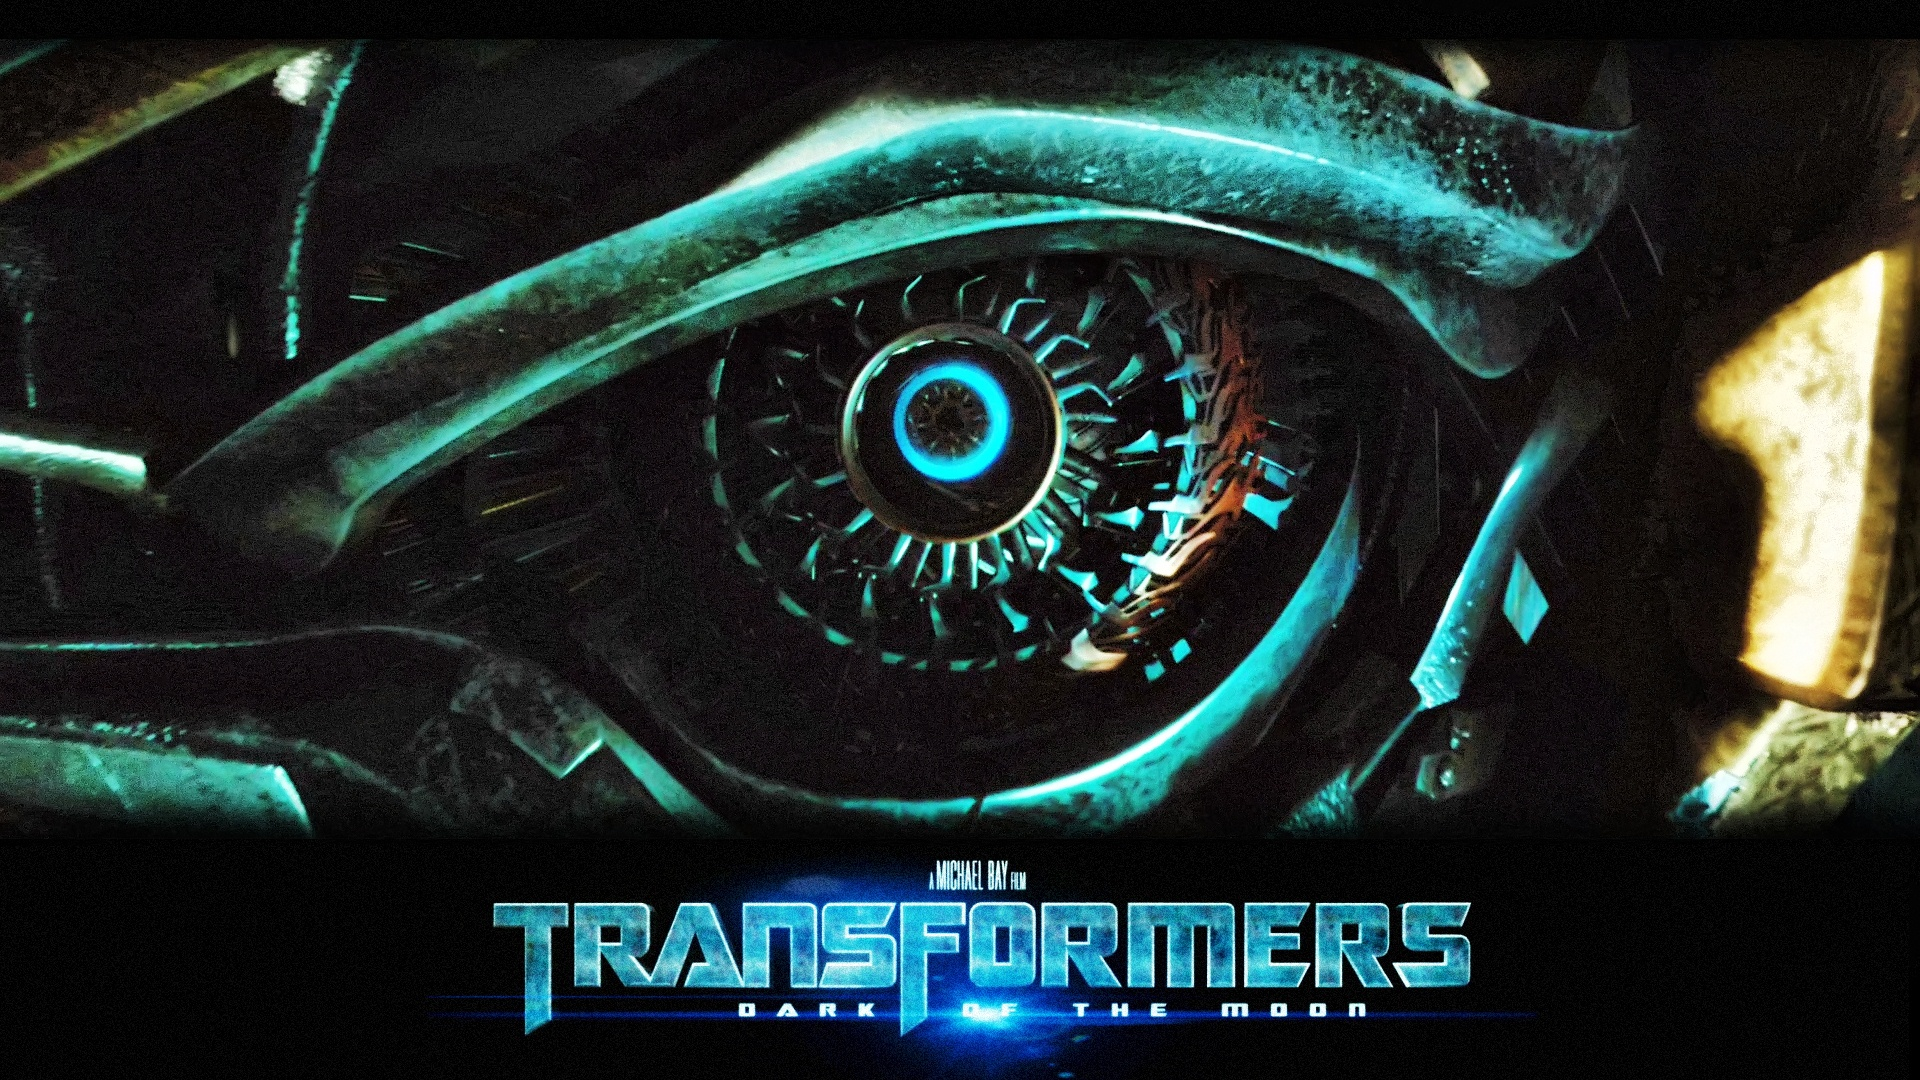 Transformers Dark of the Moon 1077.83 Kb